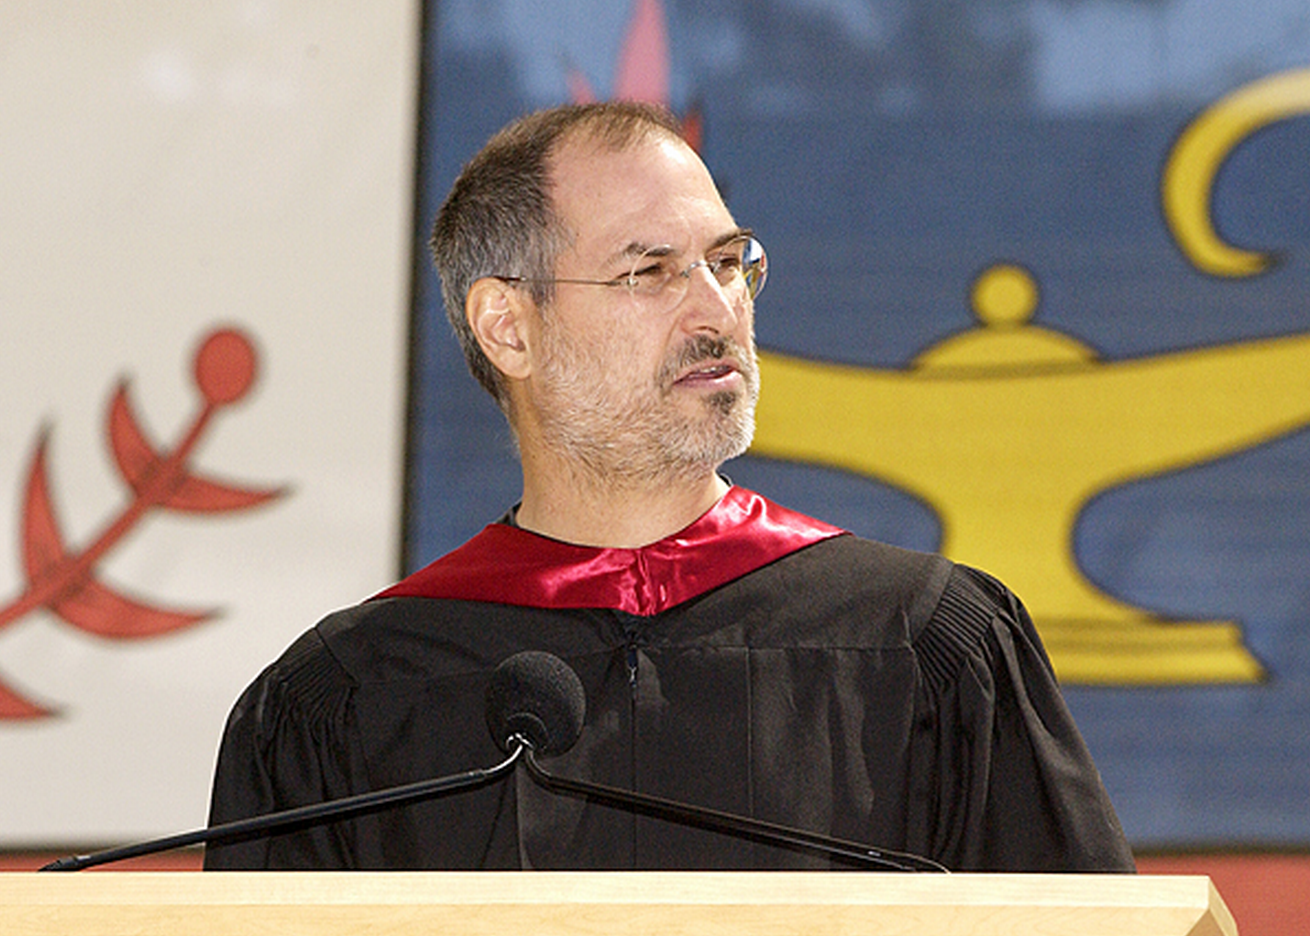 Steve Jobs alla Stanford University